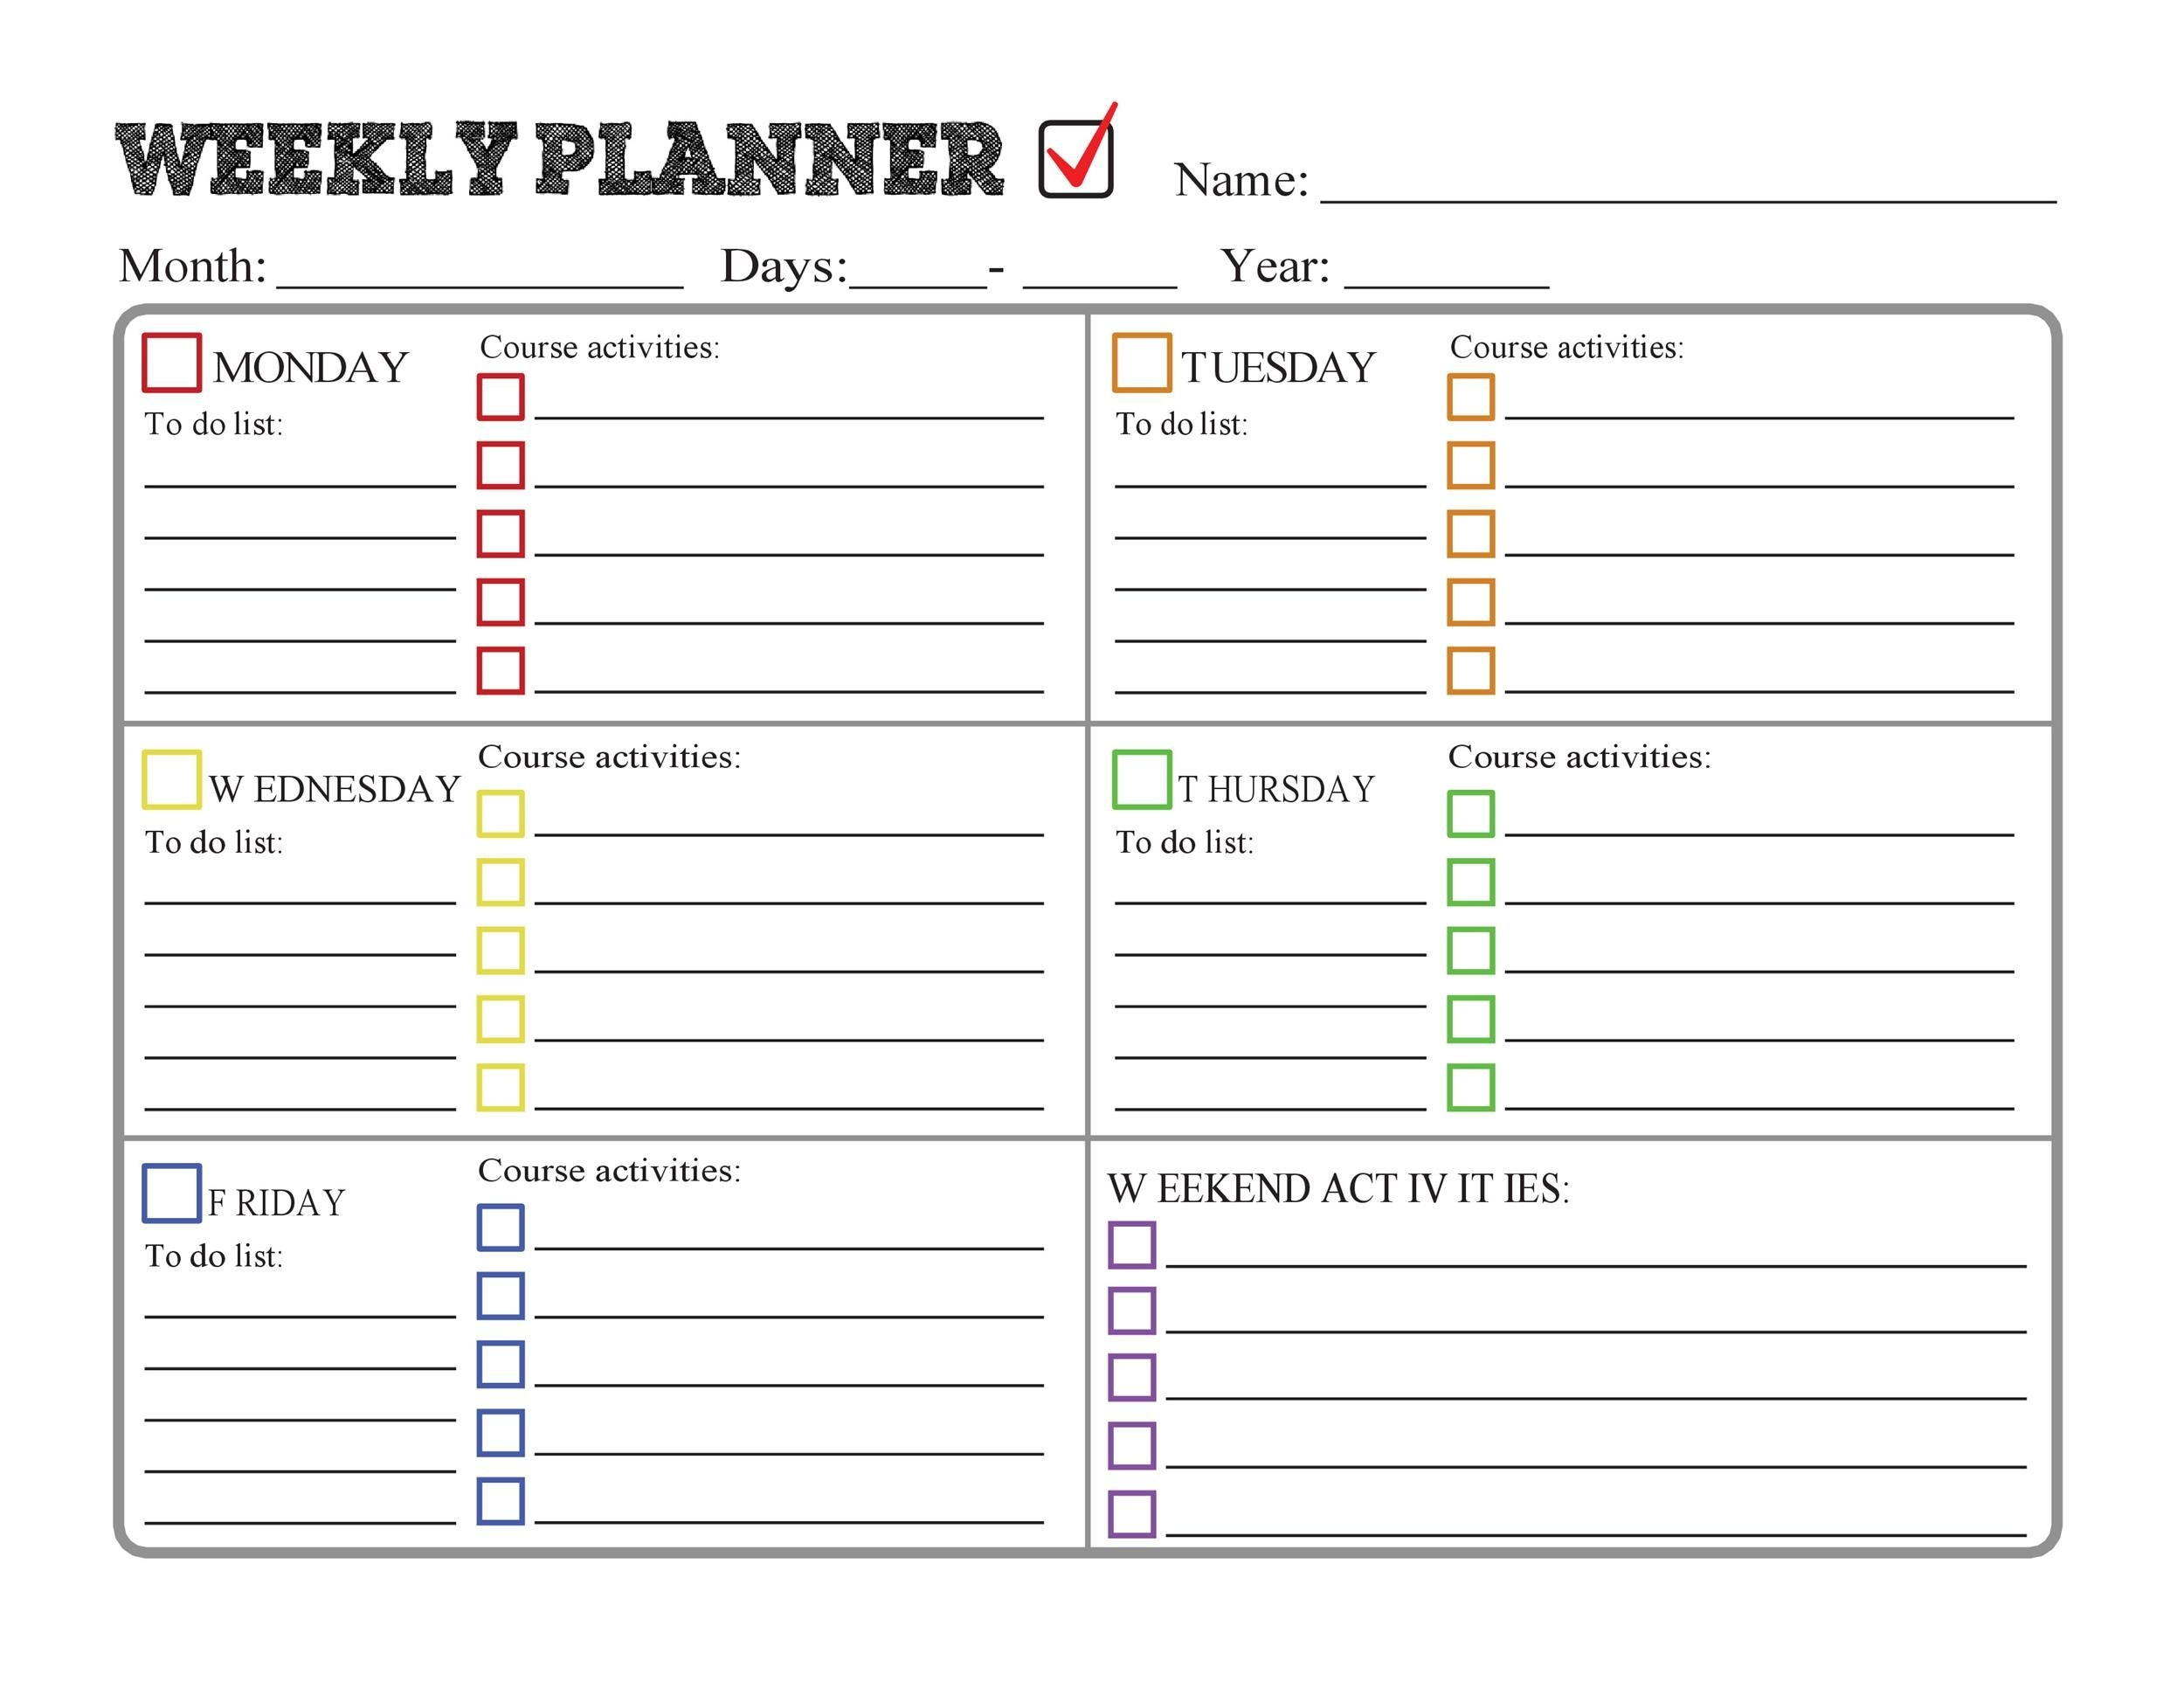 37 Printable Homework Planners (Only The Best) ᐅ Templatelab